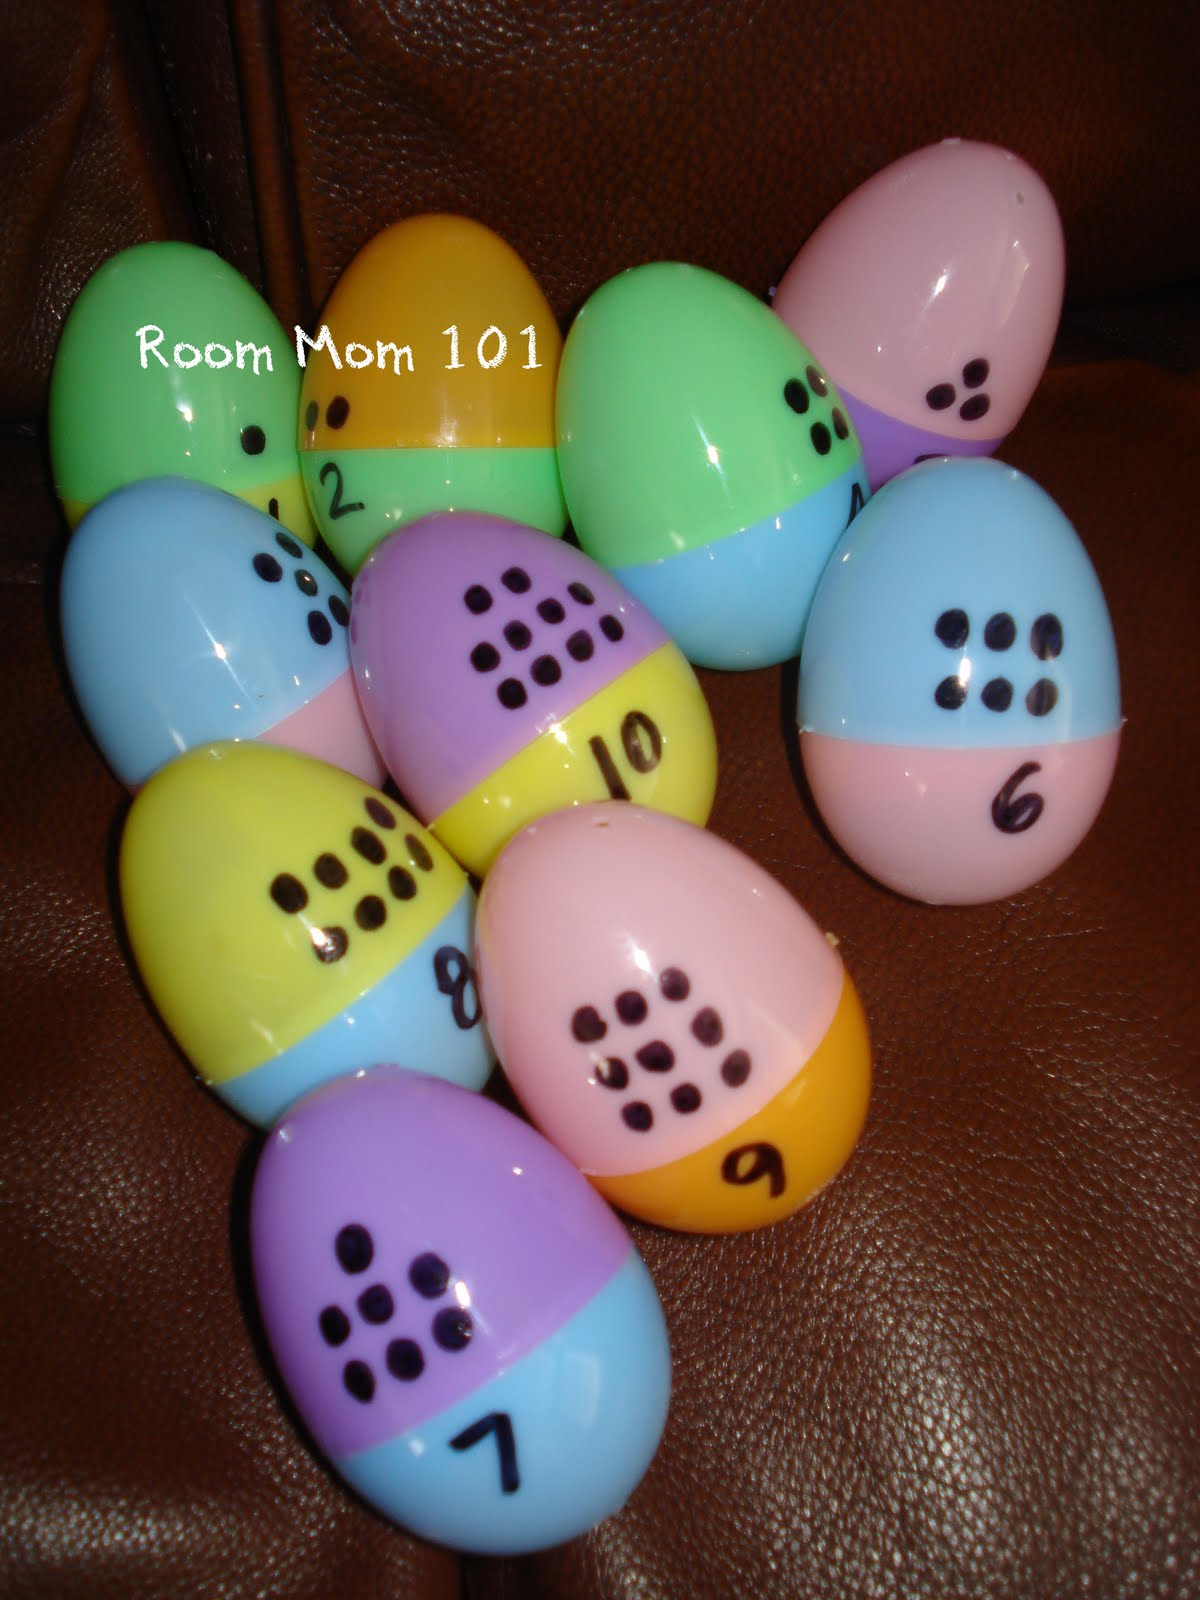 Room Mom 101 Easter Egg Matching Activity